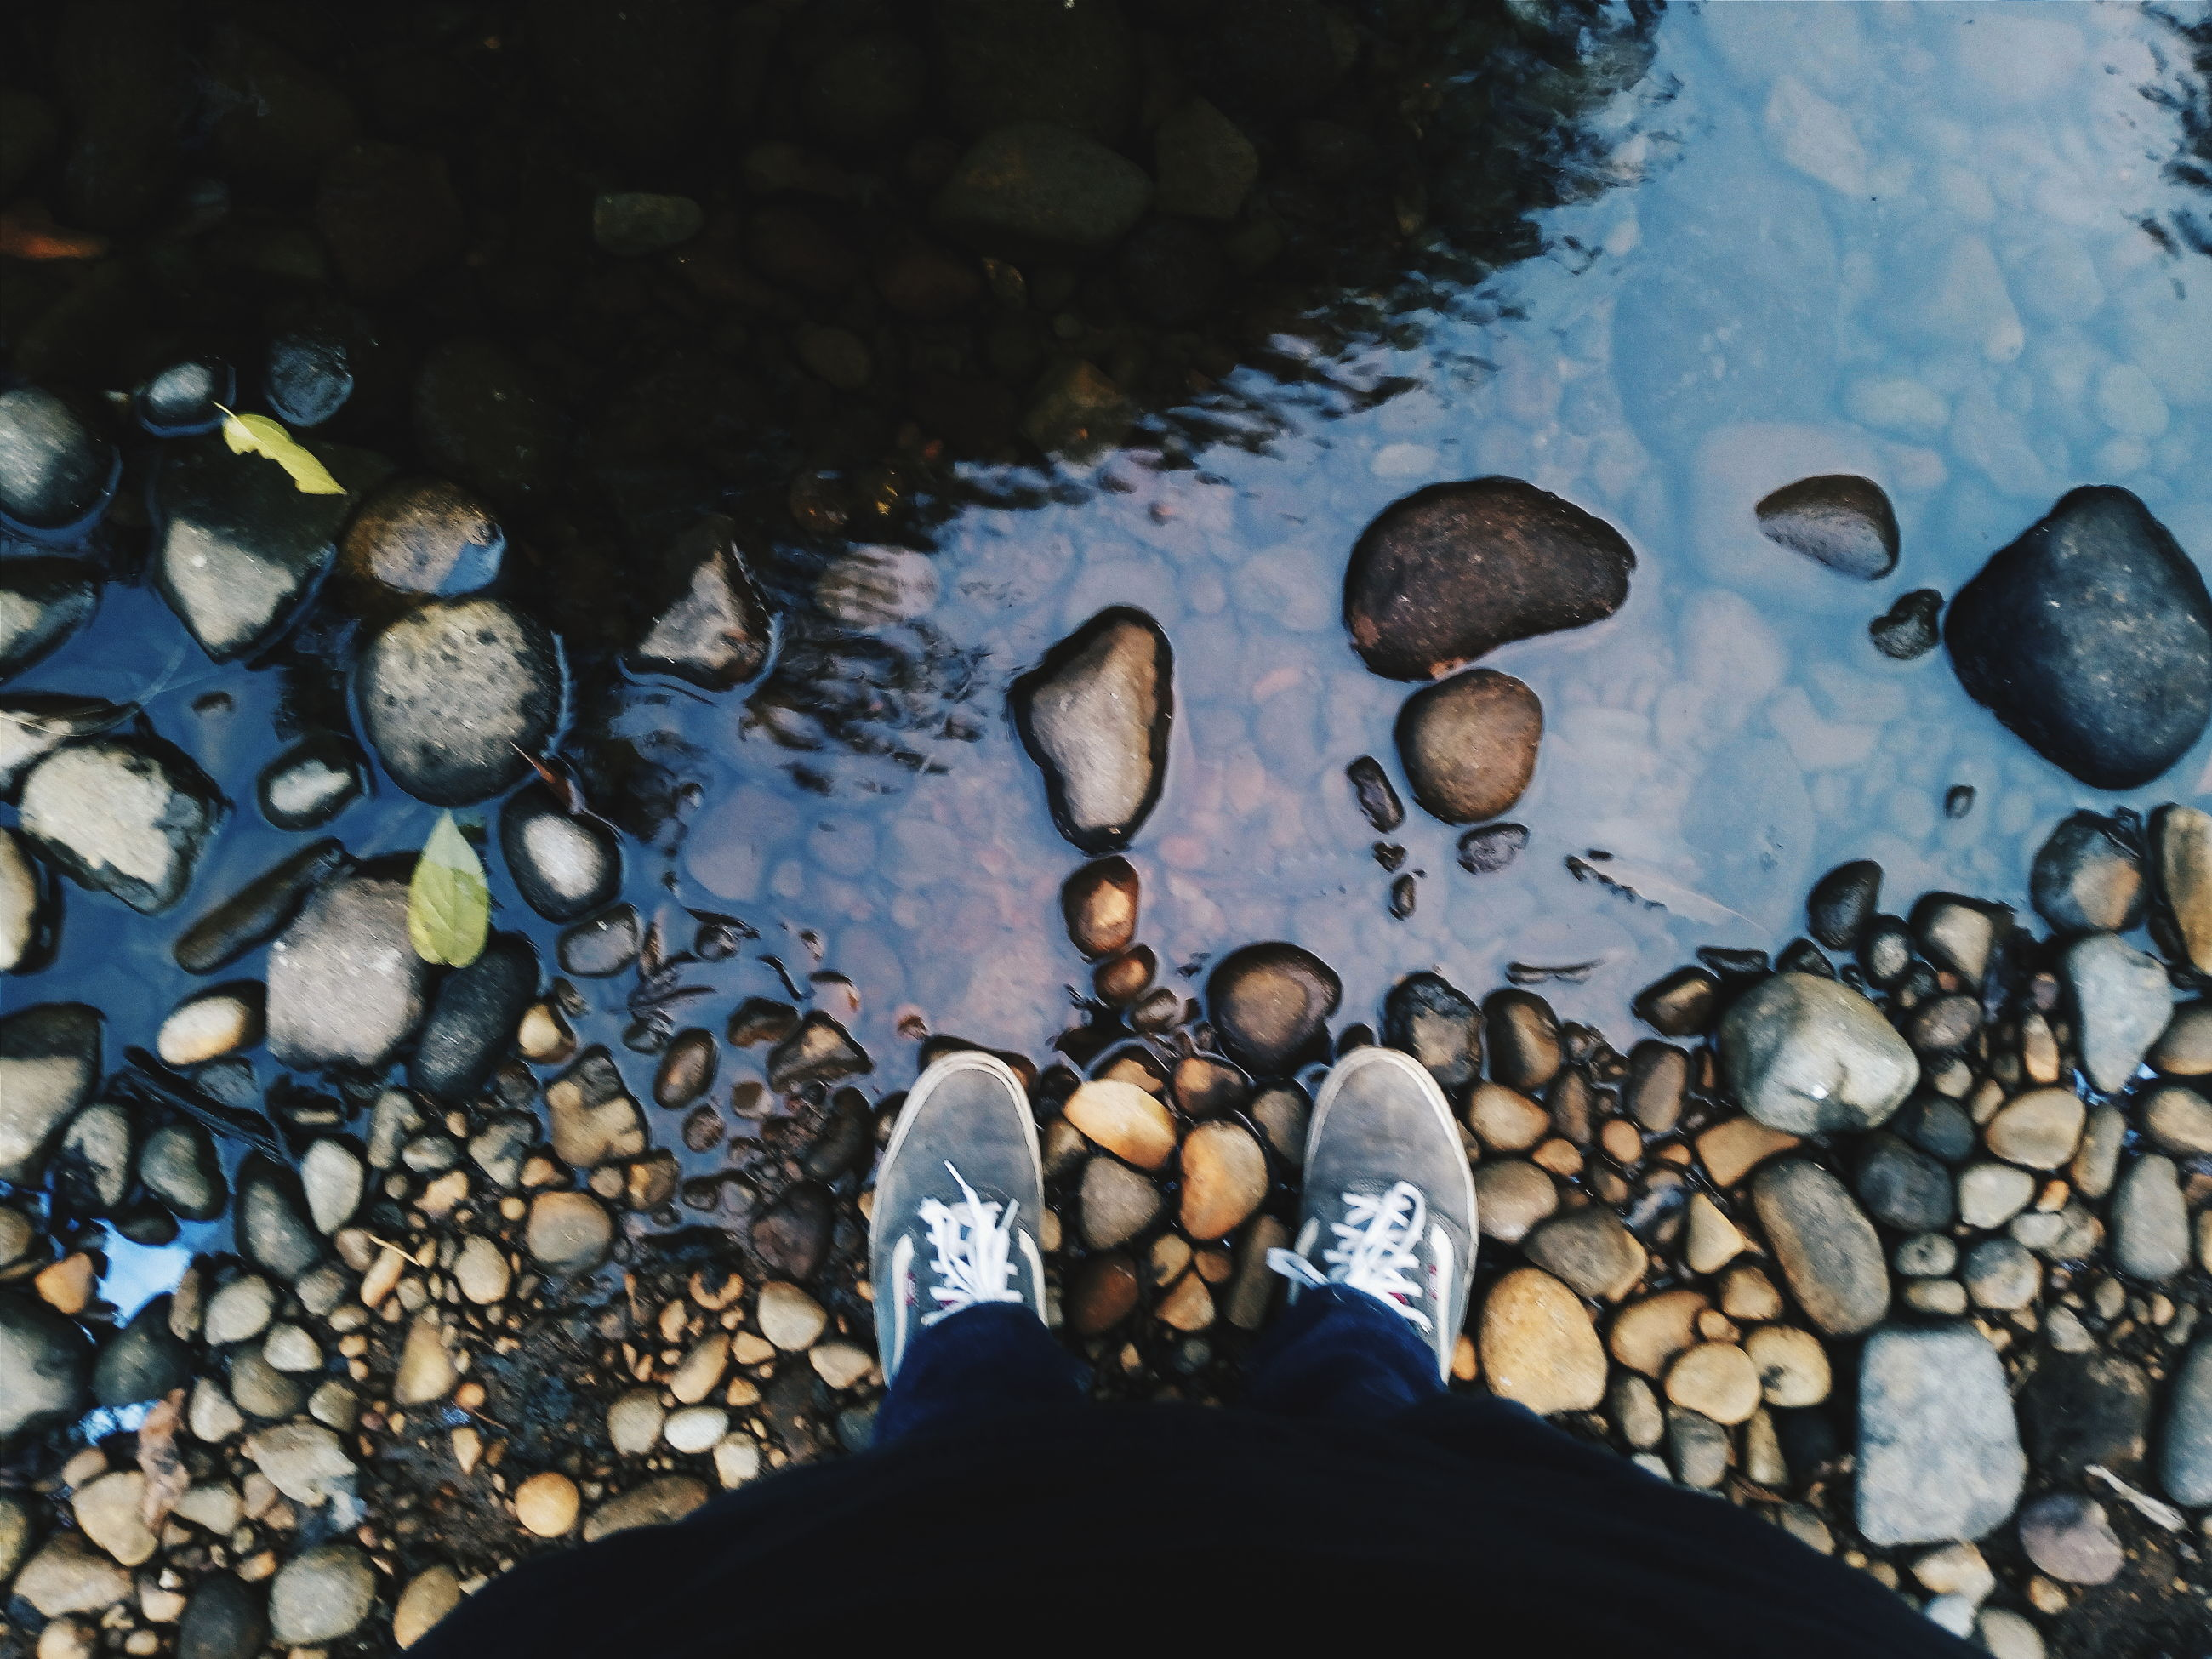 water, low section, person, standing, personal perspective, stone - object, shoe, rock - object, lifestyles, pebble, high angle view, leisure activity, men, nature, reflection, lake, outdoors